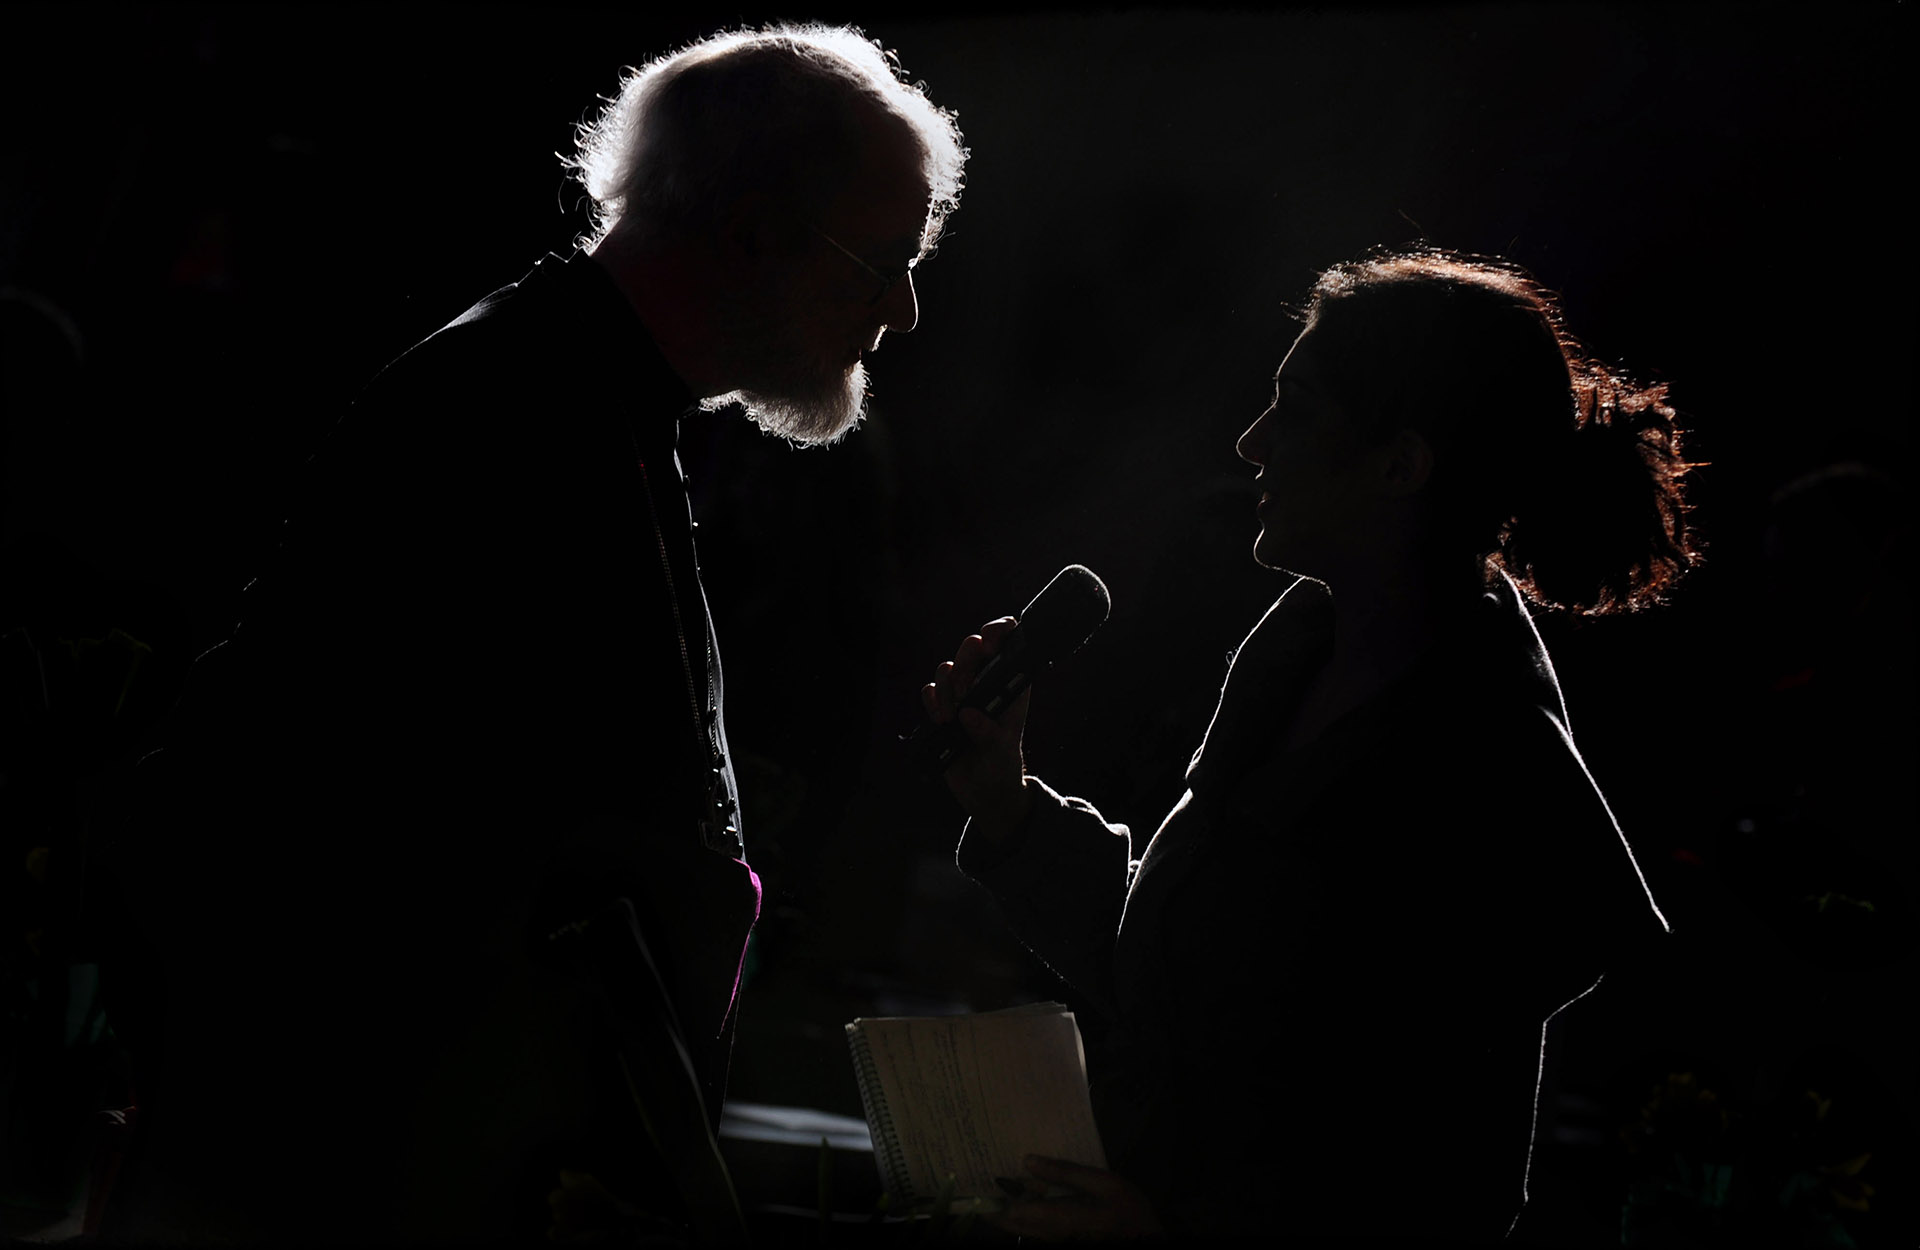 Photograph of The Archbishop of Canterbury, Dr. Rowan Williams visiting Manchester Cathedral, Press PR Photography Jon Parker Lee